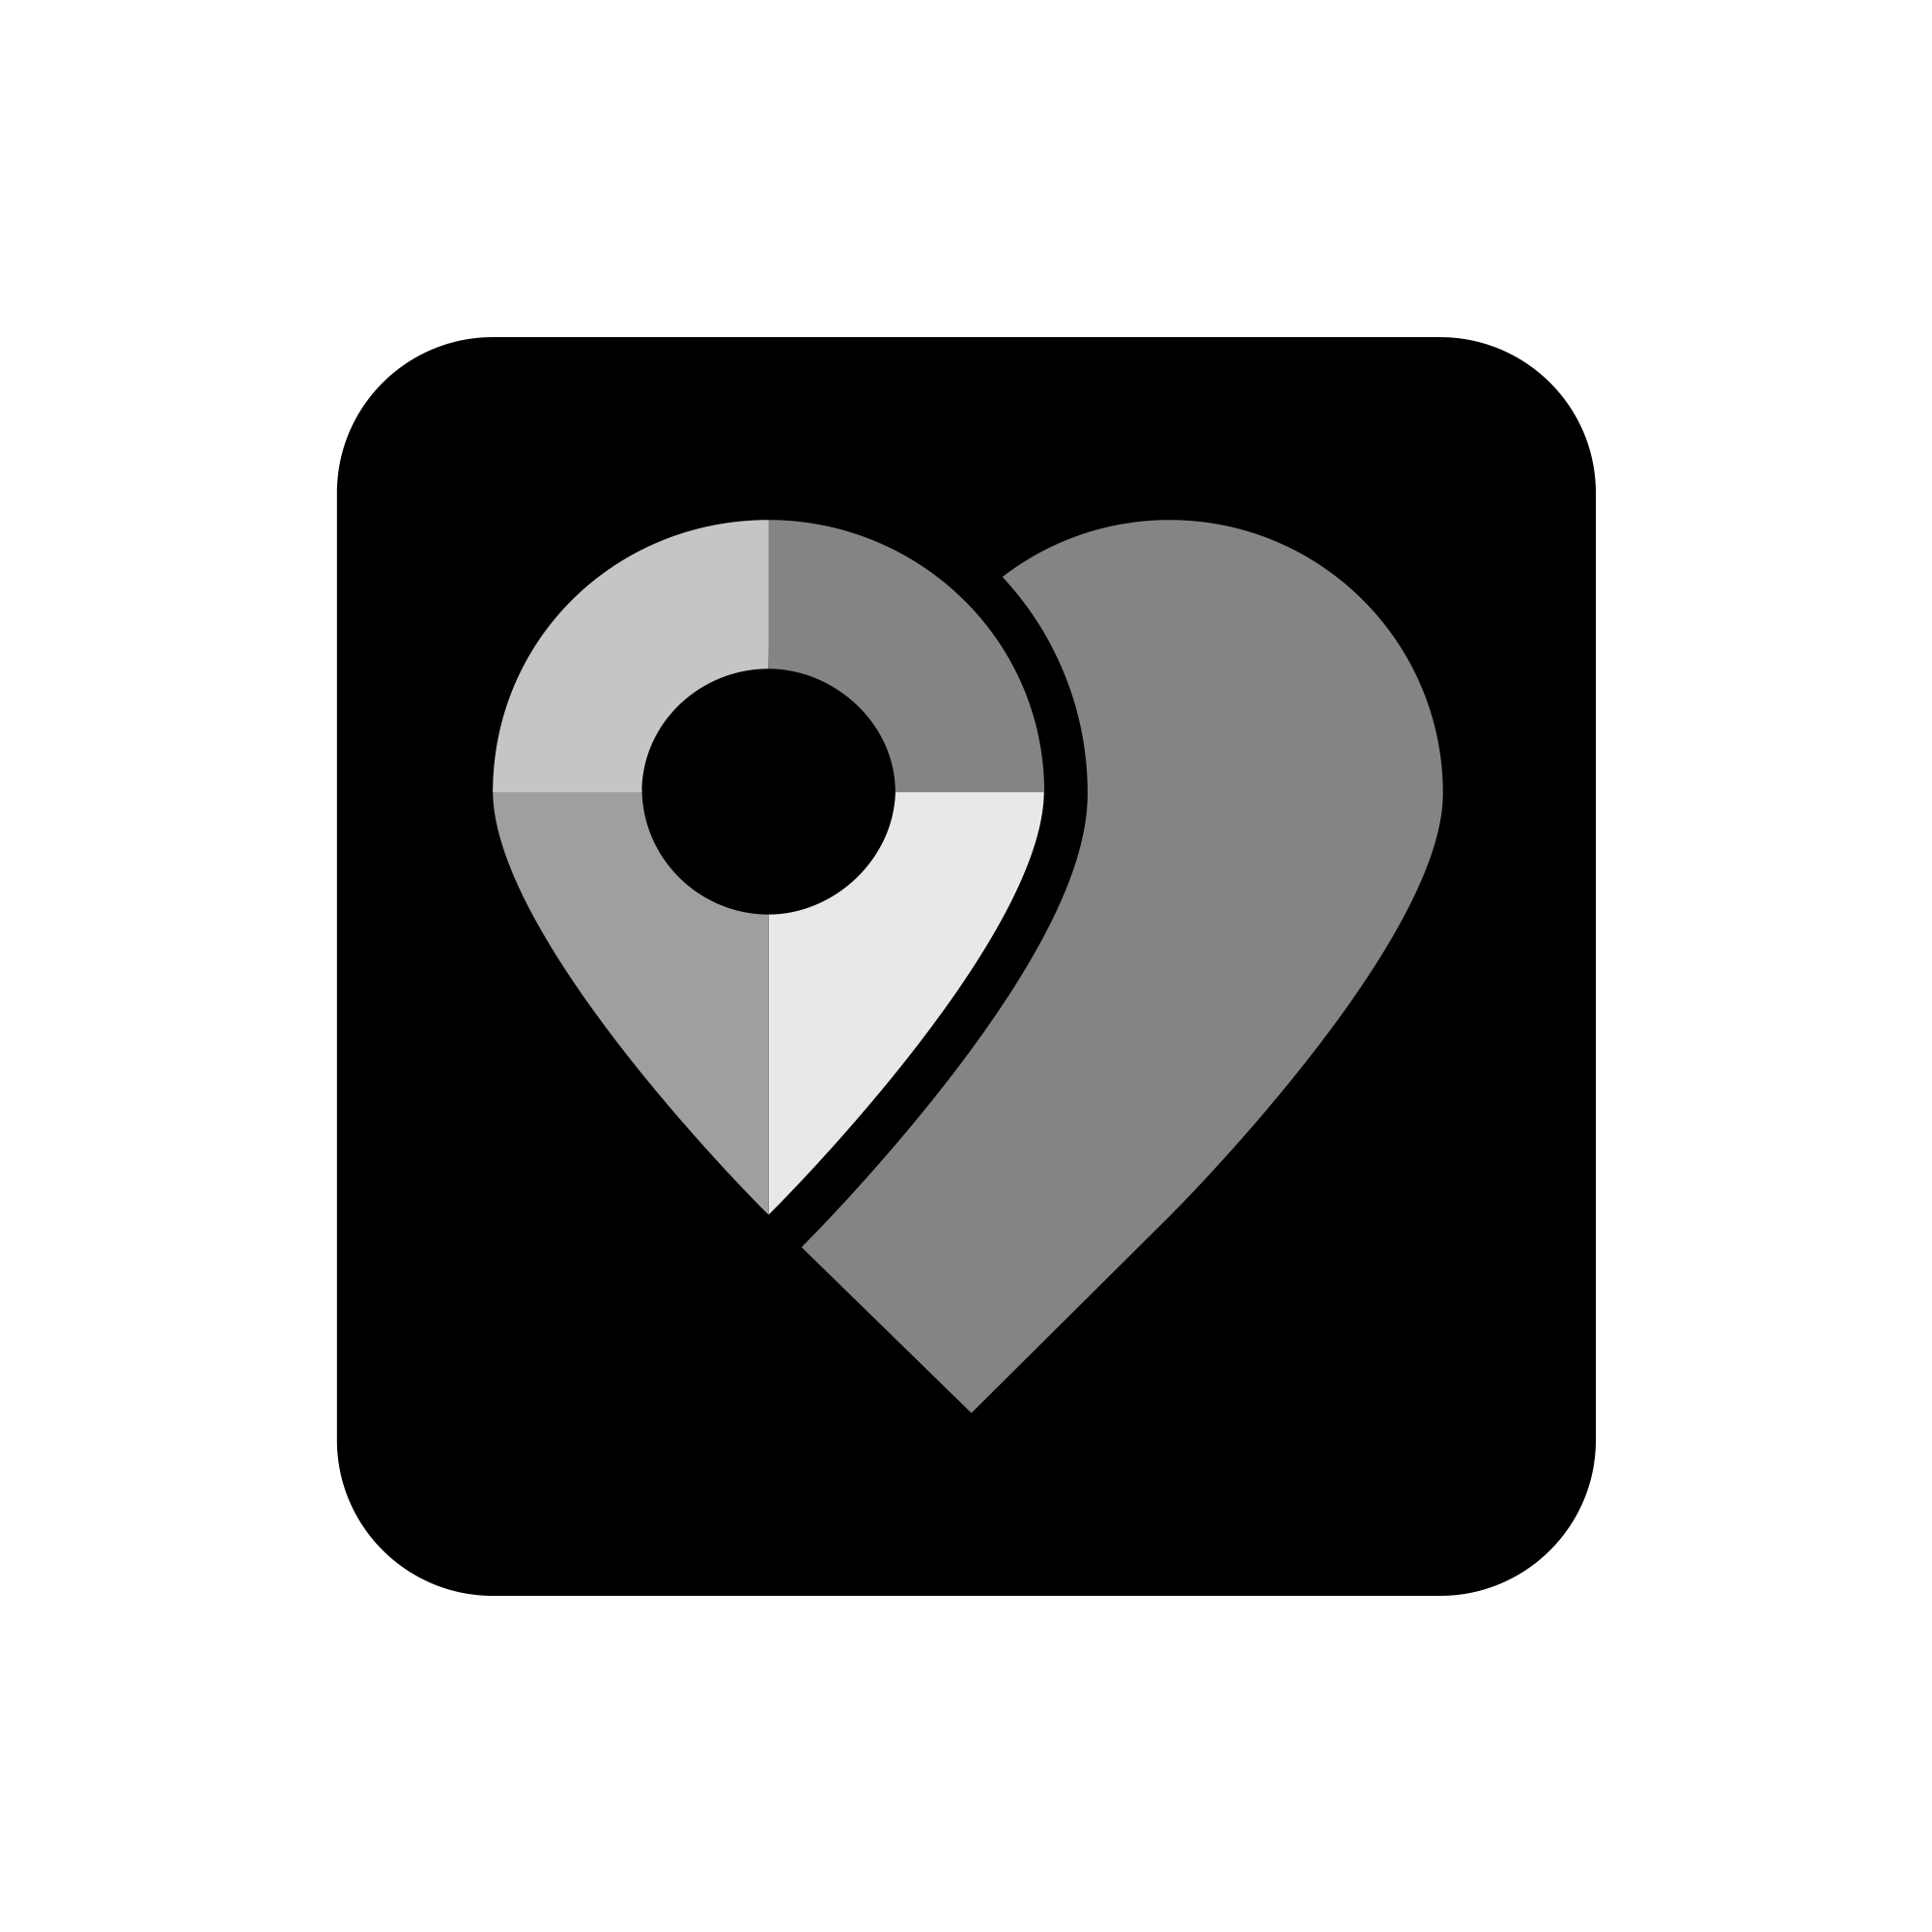 ICON for smart meets heart concept to tie in with existing logo family